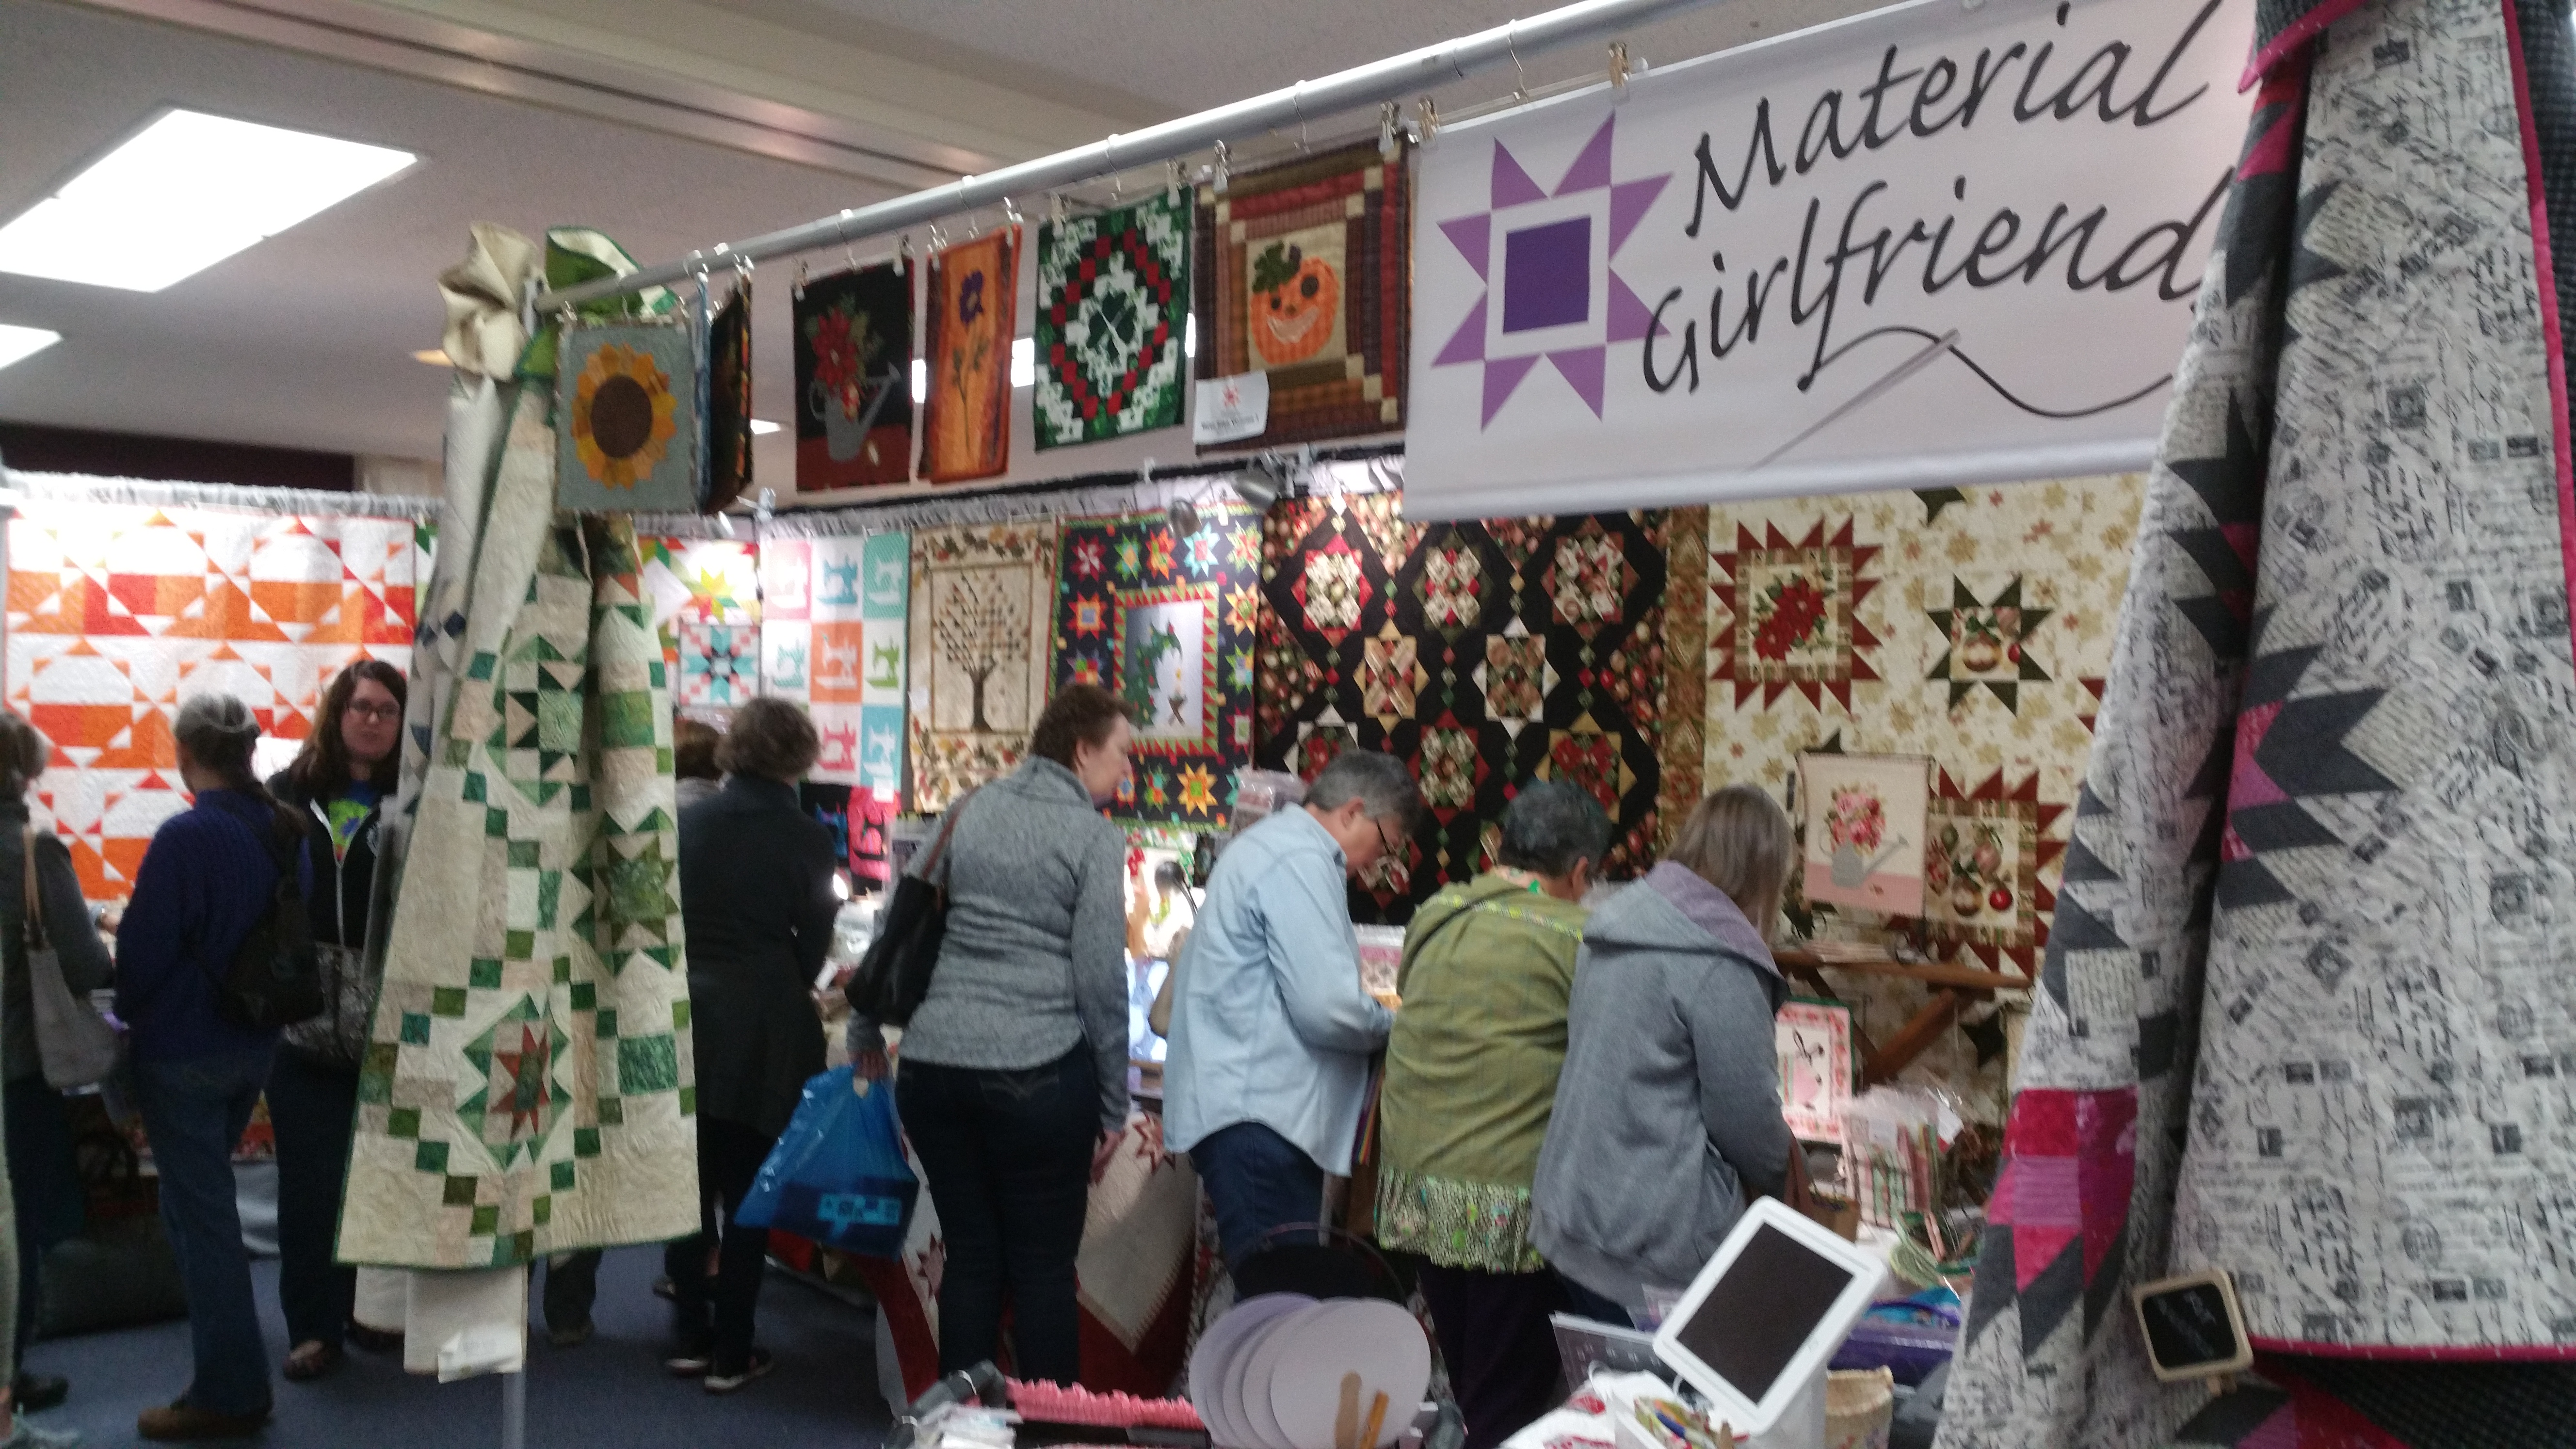 545cc2f0b5c We were in Sacramento this past weekend at the River City Quilters' Guild  show. Look how much fun we were having.